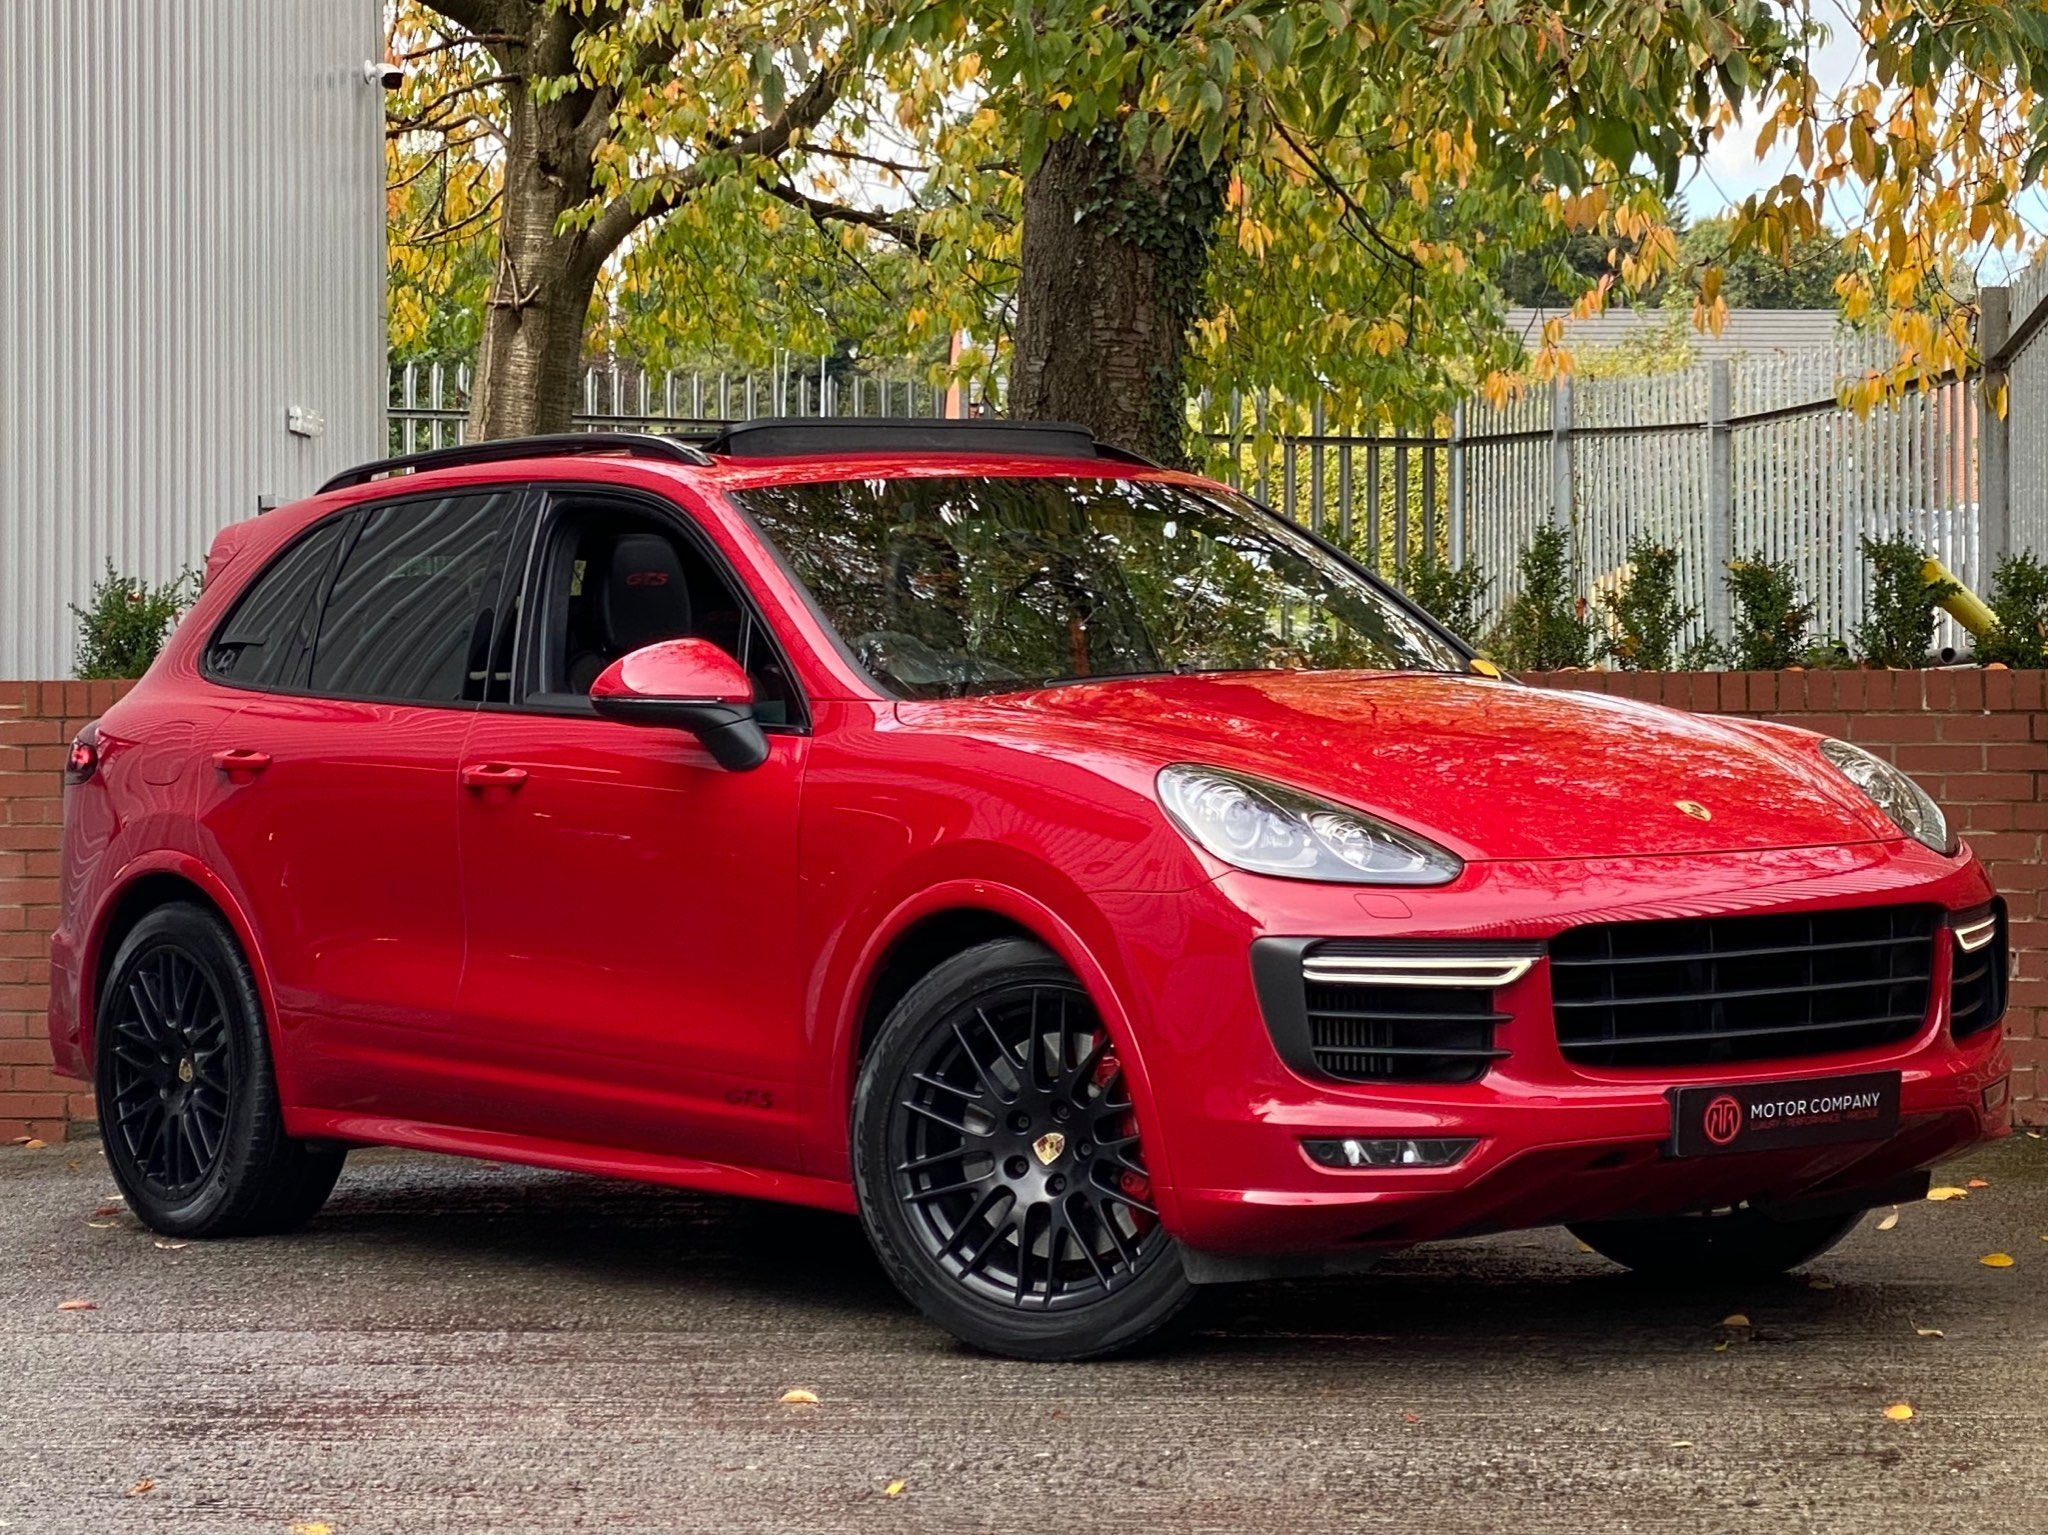 Red Porsche Cayenne Used Cars For Sale Autotrader Uk